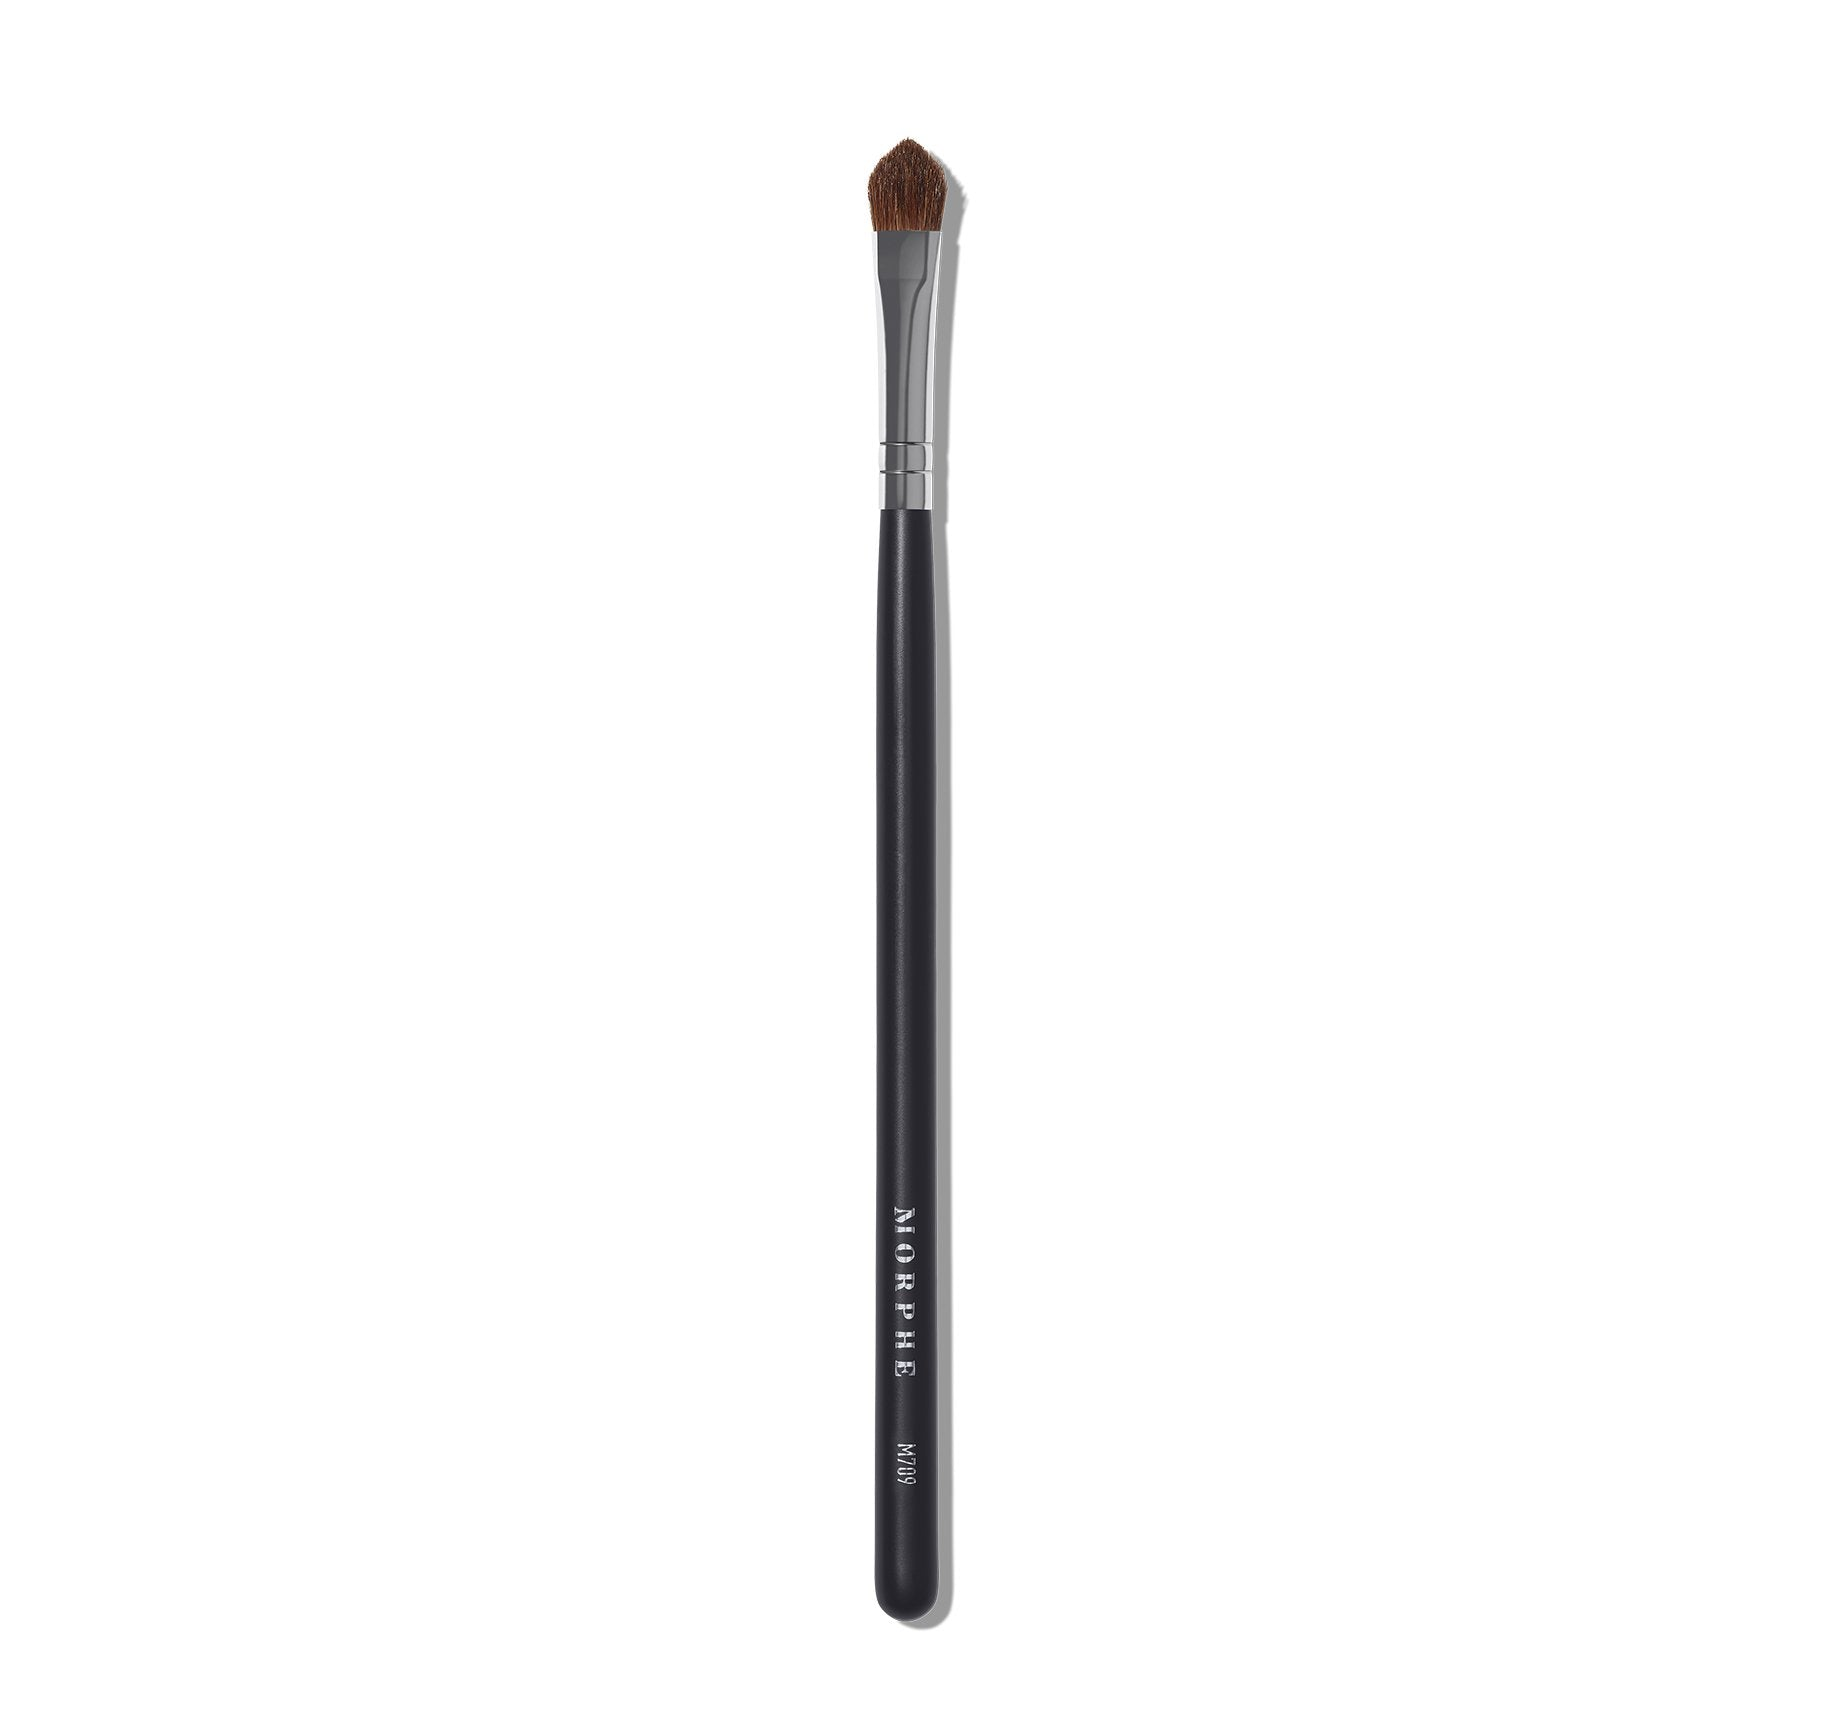 M709 POINTED PACKER BRUSH, view larger image